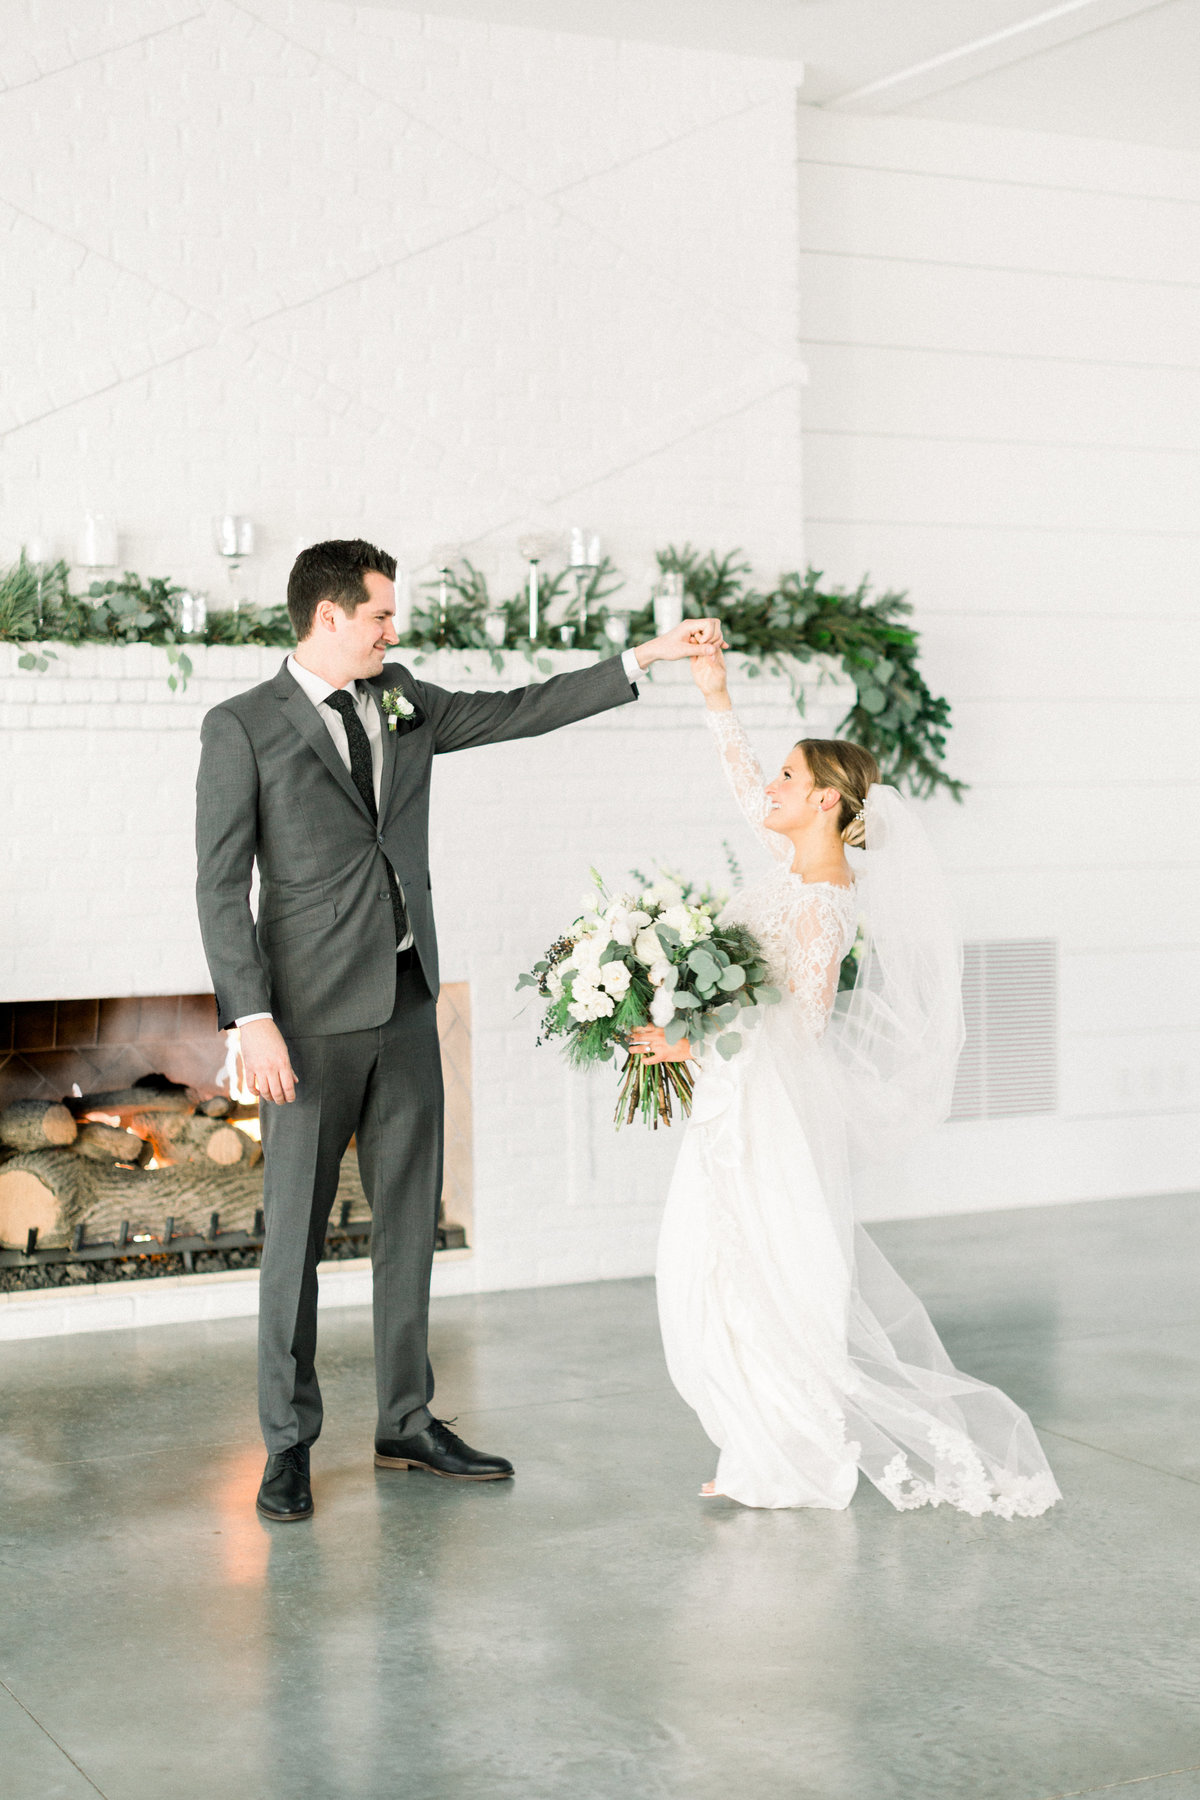 Trish Allison Photography, Minneapolis Wedding Photographer, Minnesota Wedding Photographer, Light and Airy Photographer, Minnesota Bride 1